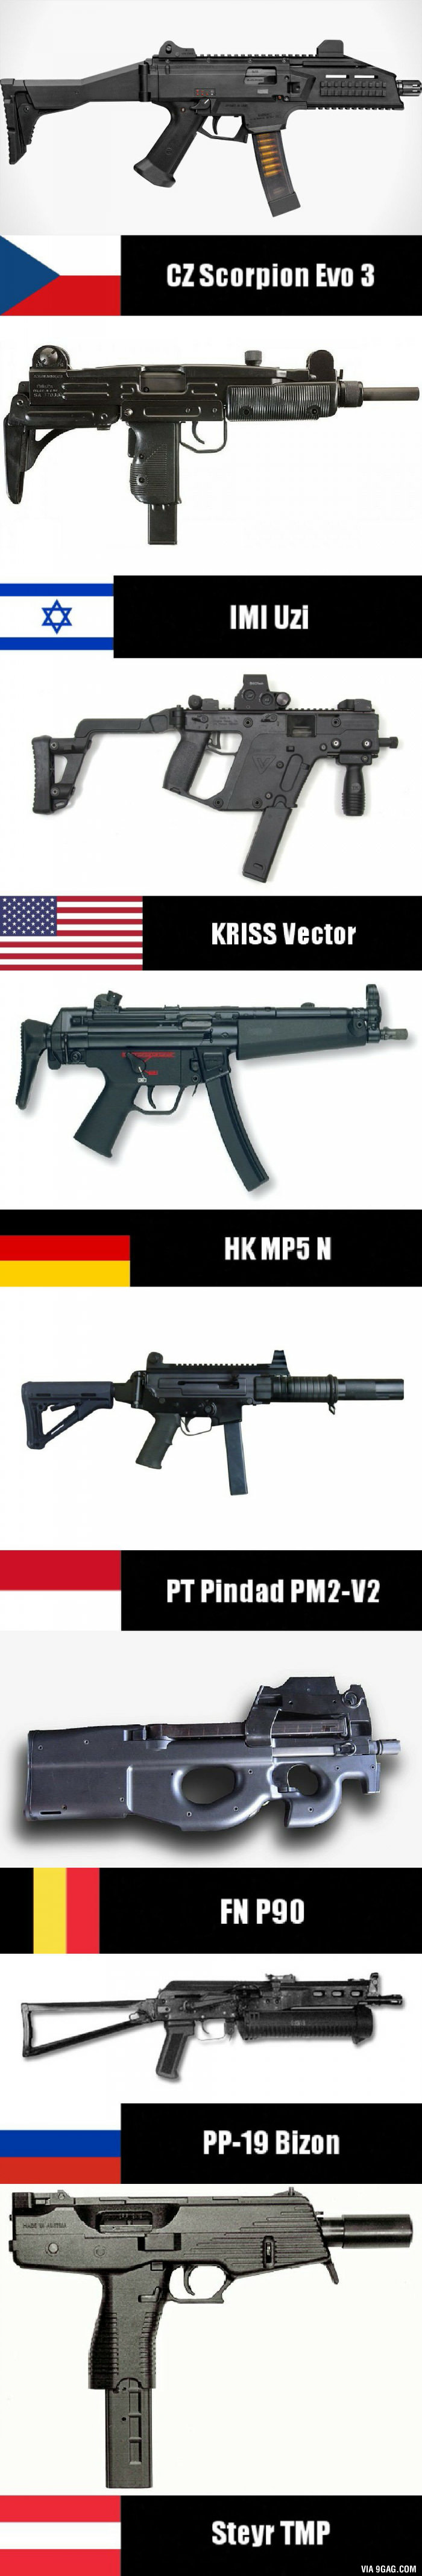 Which one is your favorite SMG?